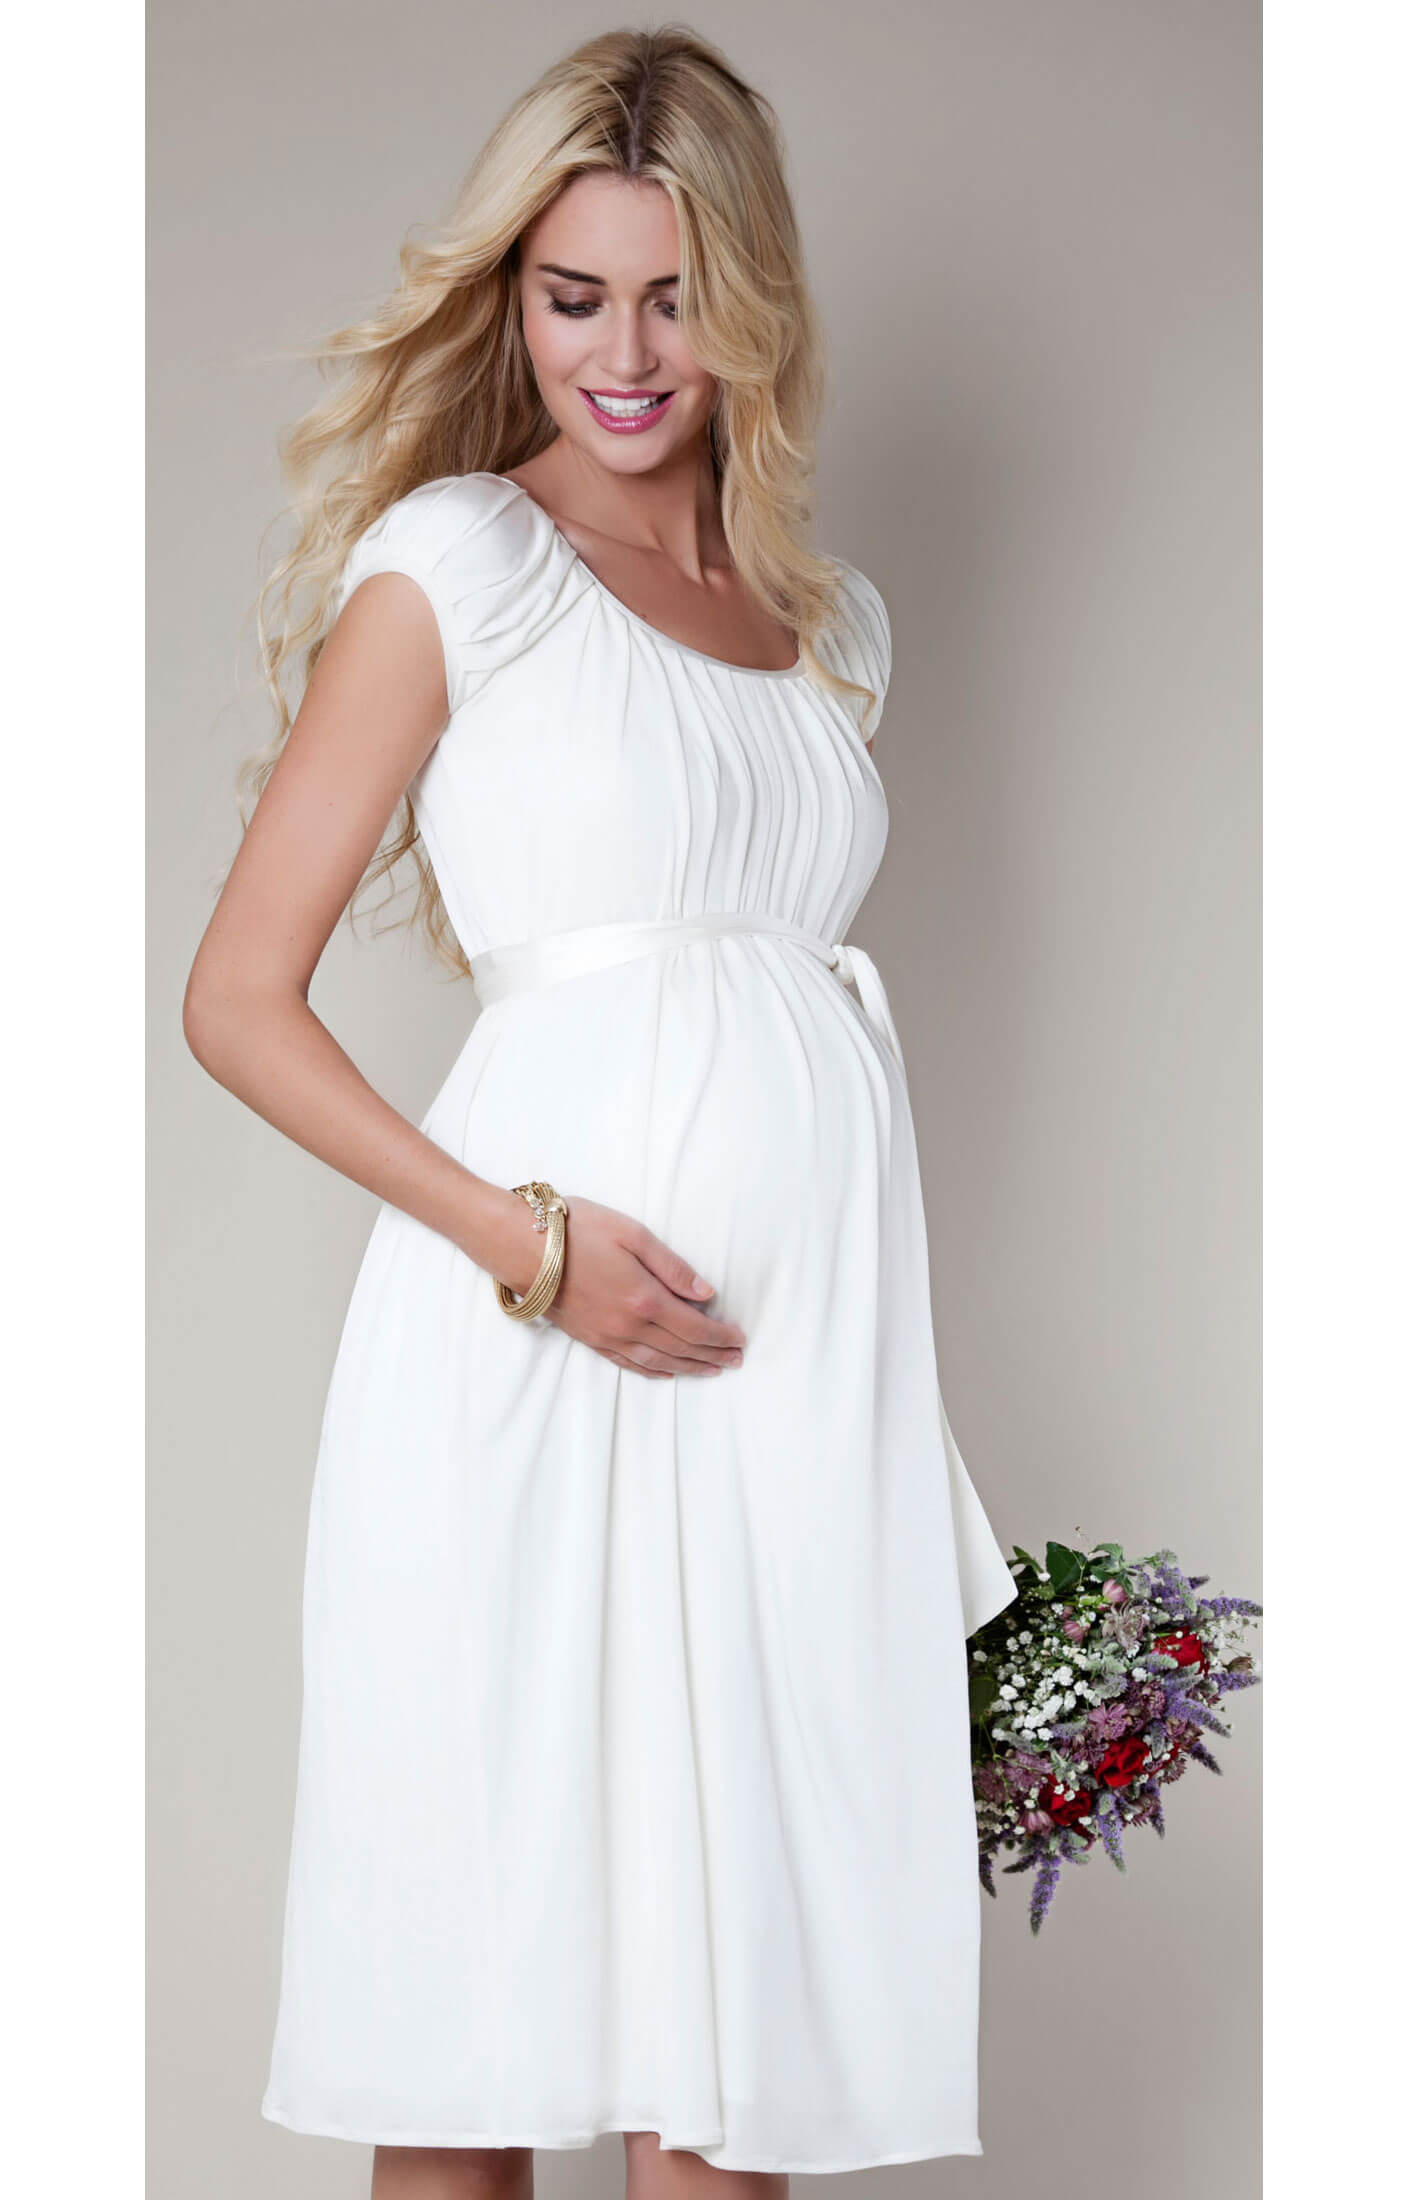 In it was reported that maternity clothes is a $ billion market in the U.S. According to a Forbes analysis, in a pregnant women spent around $ on maternity wear. This represents approximately one-sixth of all clothing sales each year.